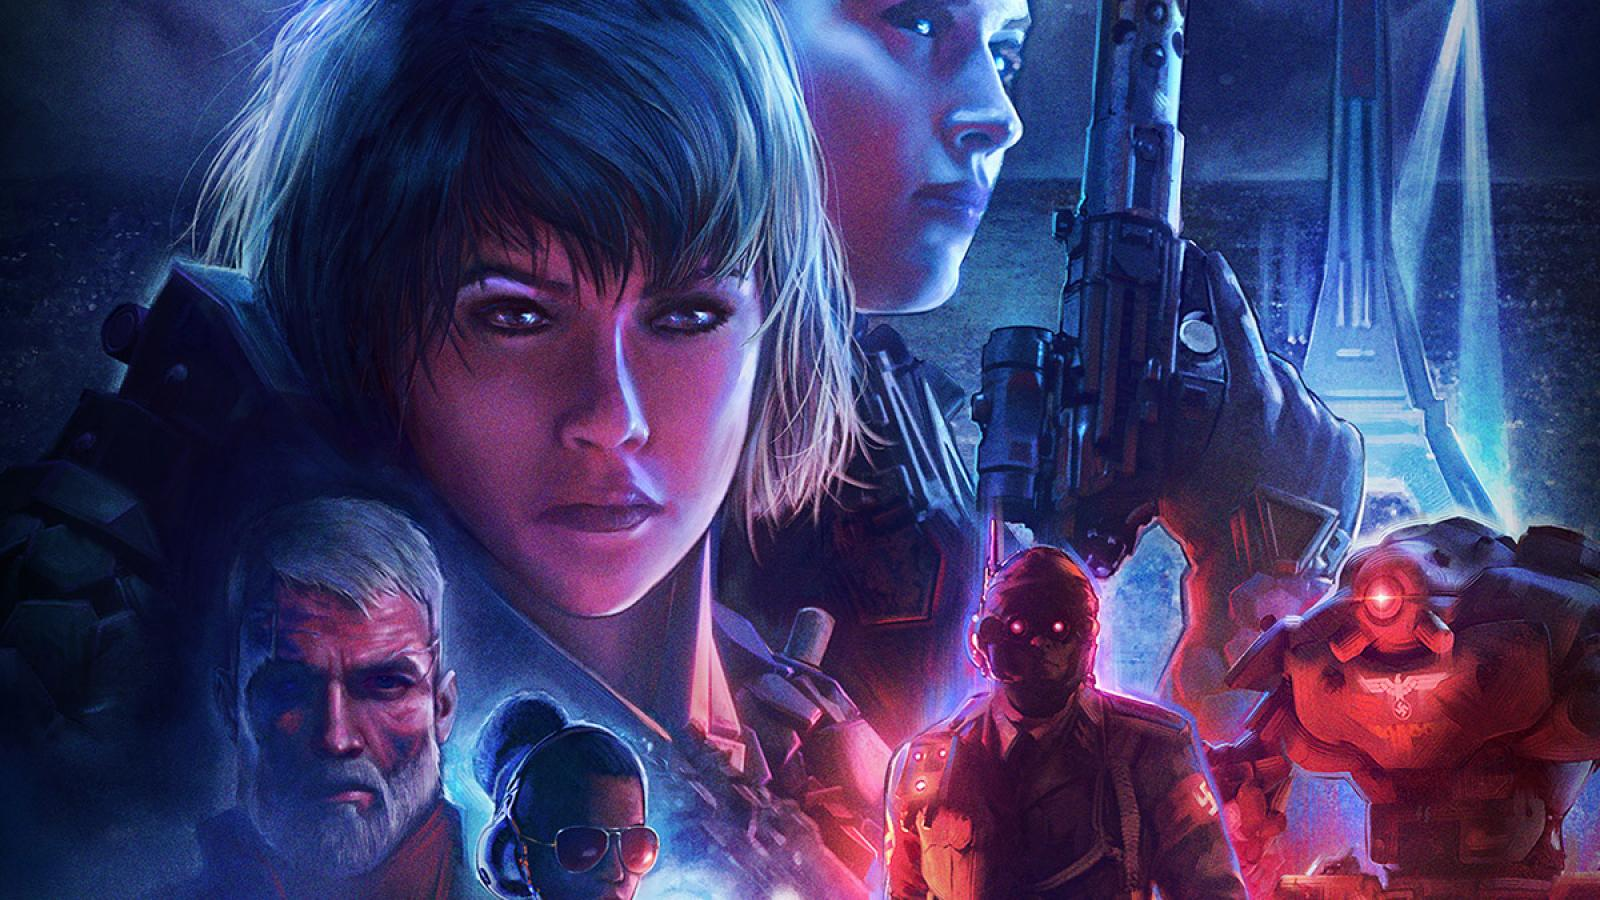 Awesome Cover Art Process for Wolfenstein: Youngblood